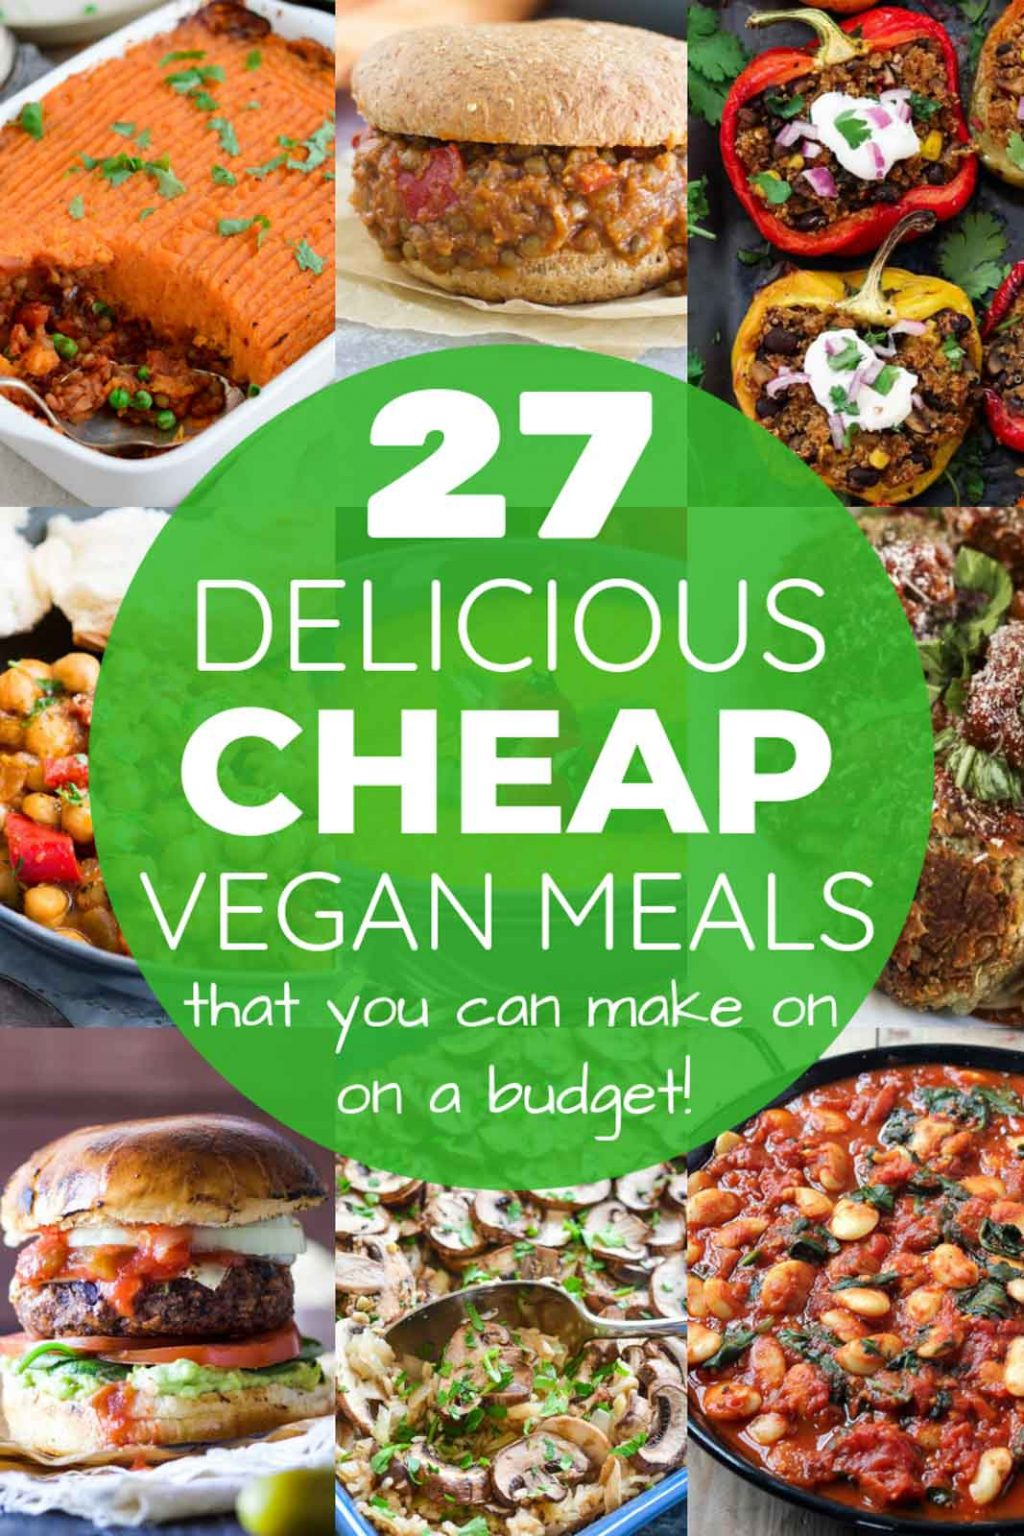 A collage of photos showing 27 delicious cheap vegan meals that you can make on a budget!